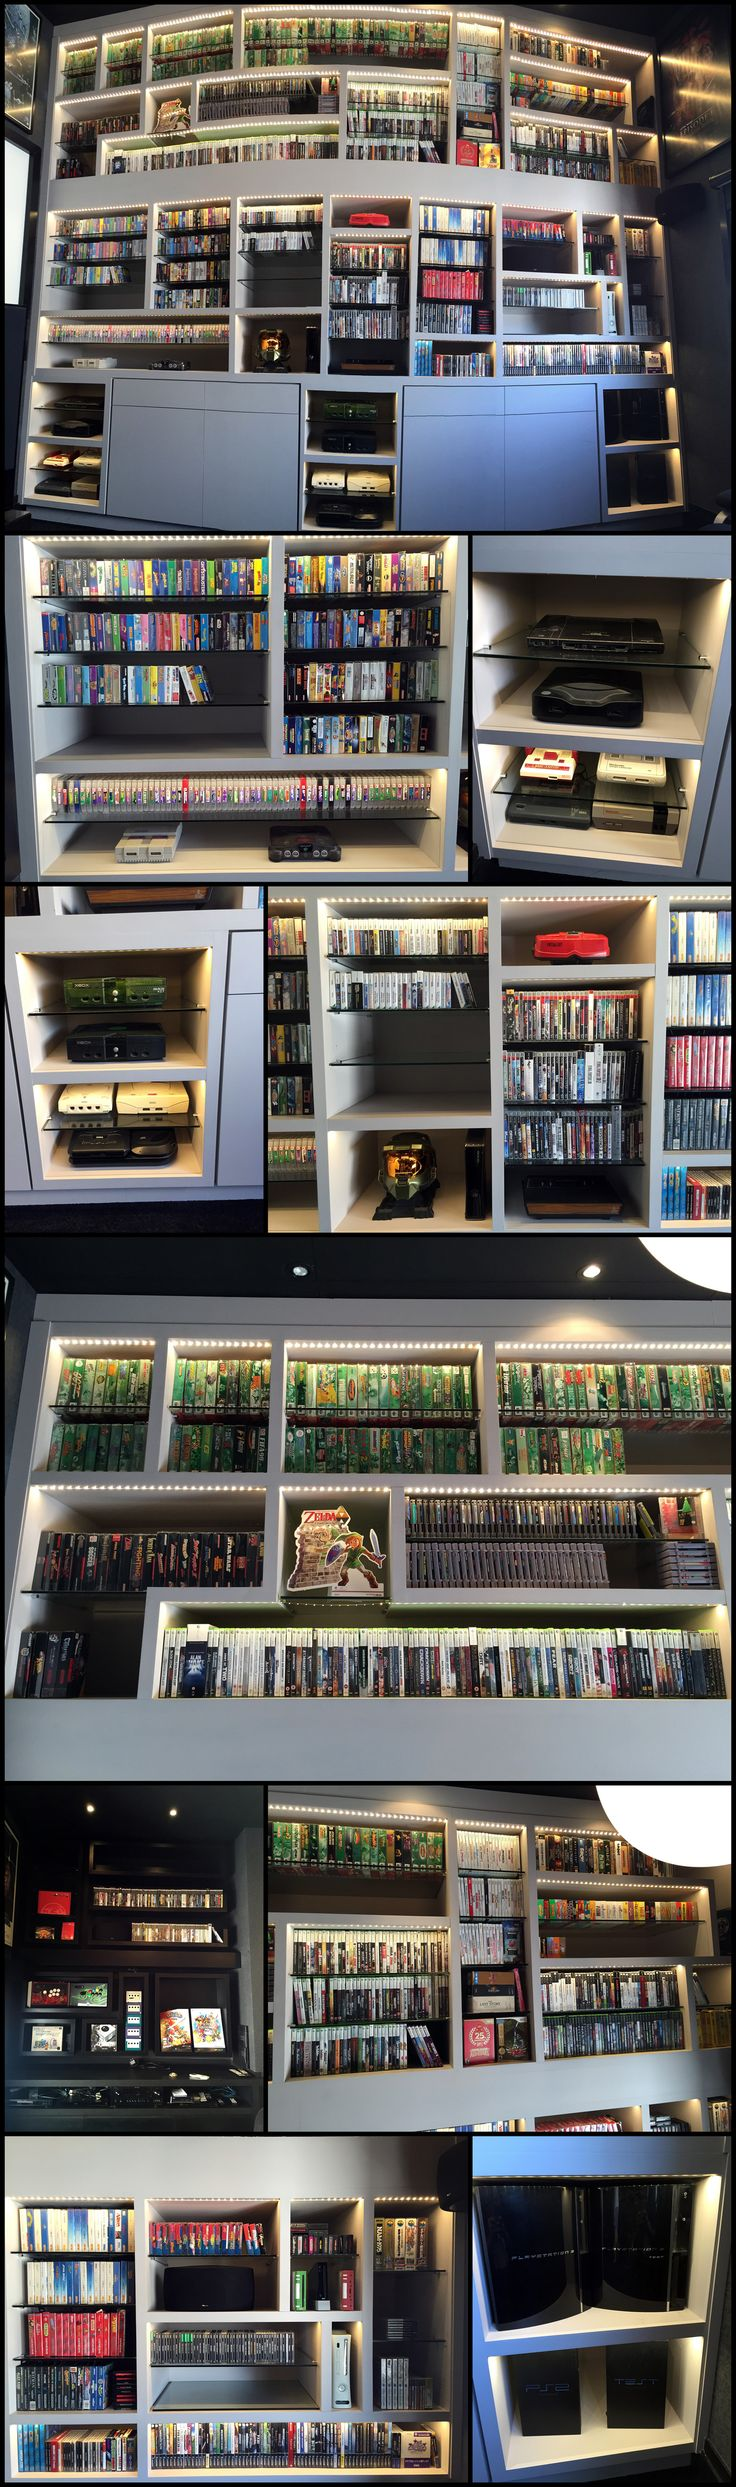 game room lighting ideas. details of the beautiful video game display wall shelves with led lights via reddit user gameroom ideasgame room lighting ideas